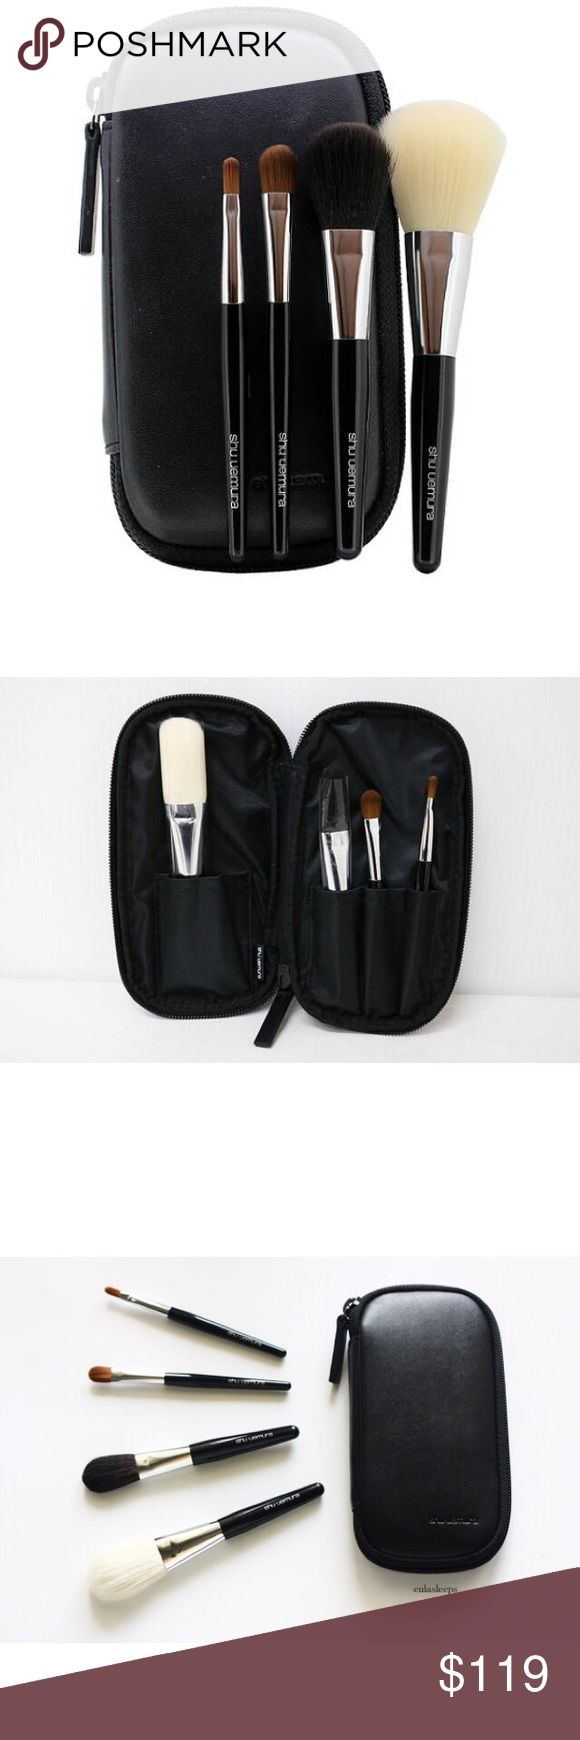 Shu Uemura - Travel Portable Brush Set with Pouch Shu Uemura - Travel Portable Brush Set with Pouch. All brushes never used or washed. ❗️Not from Sephora. Listed Sephora for exposure❗️ Sephora Makeup Brushes & Tools